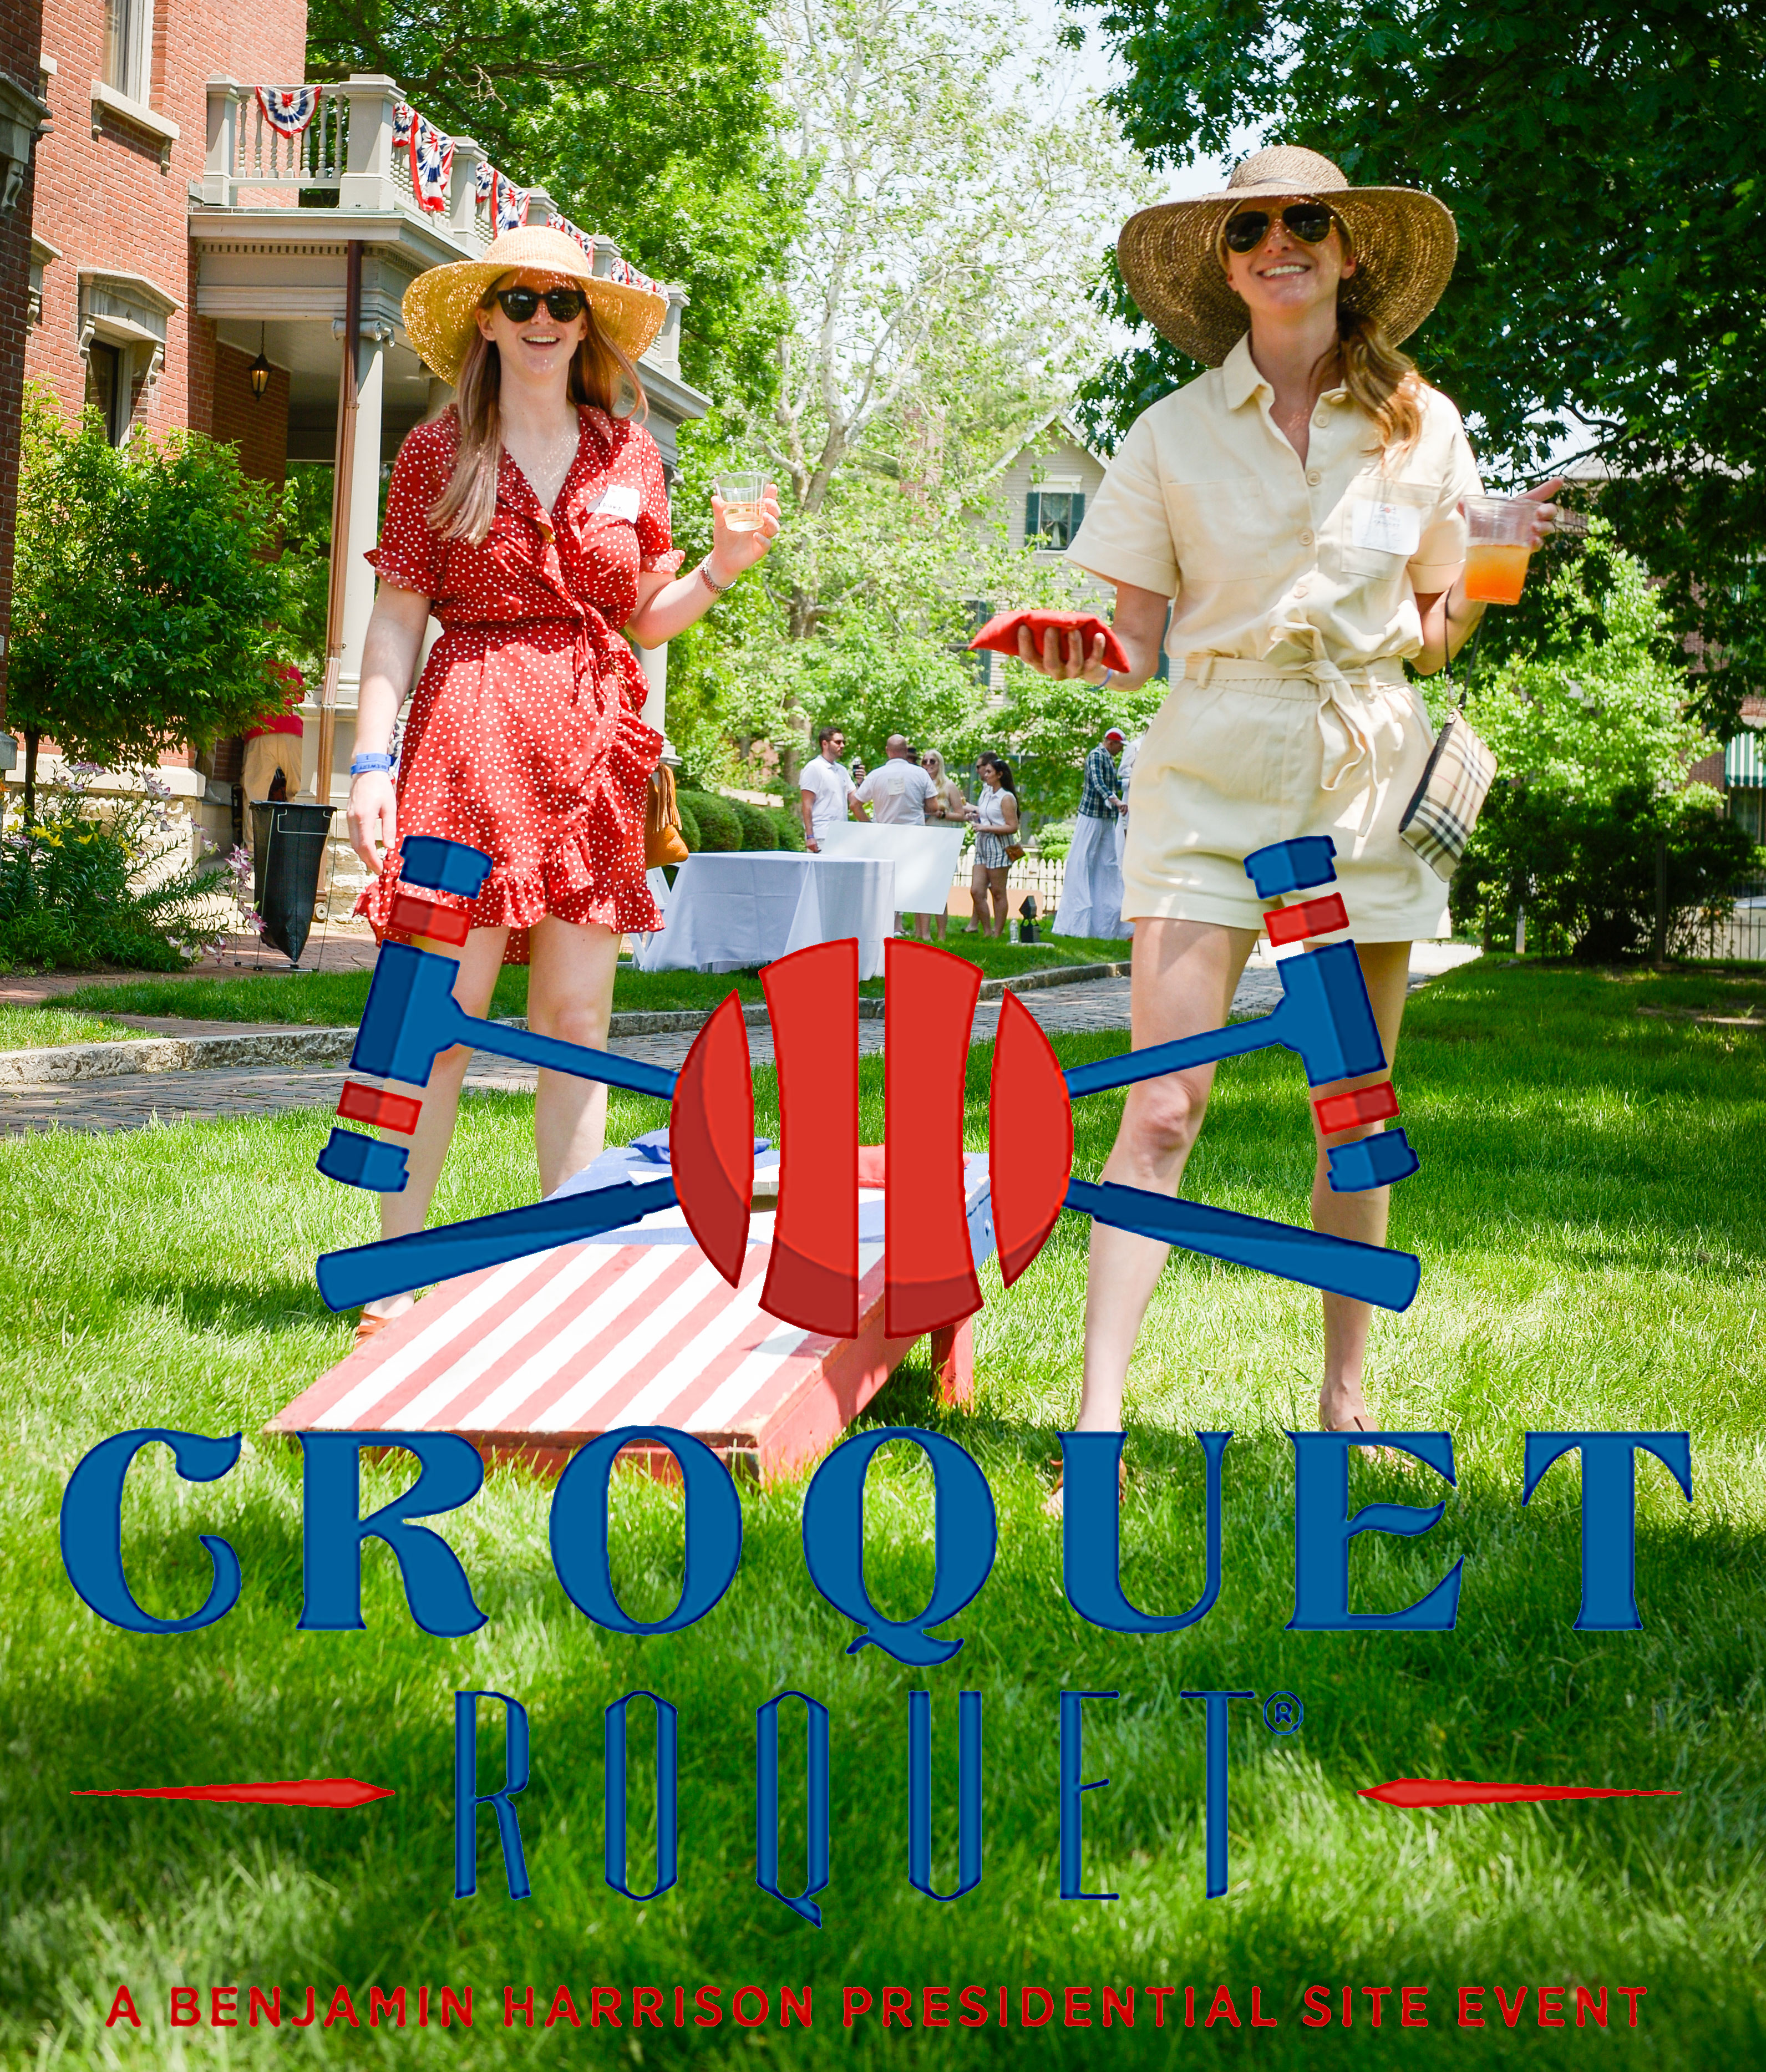 Graphic image of the croquet roquet logo overlaid onto a photograph of two visitors to the presidential site, playing croquet at the event.